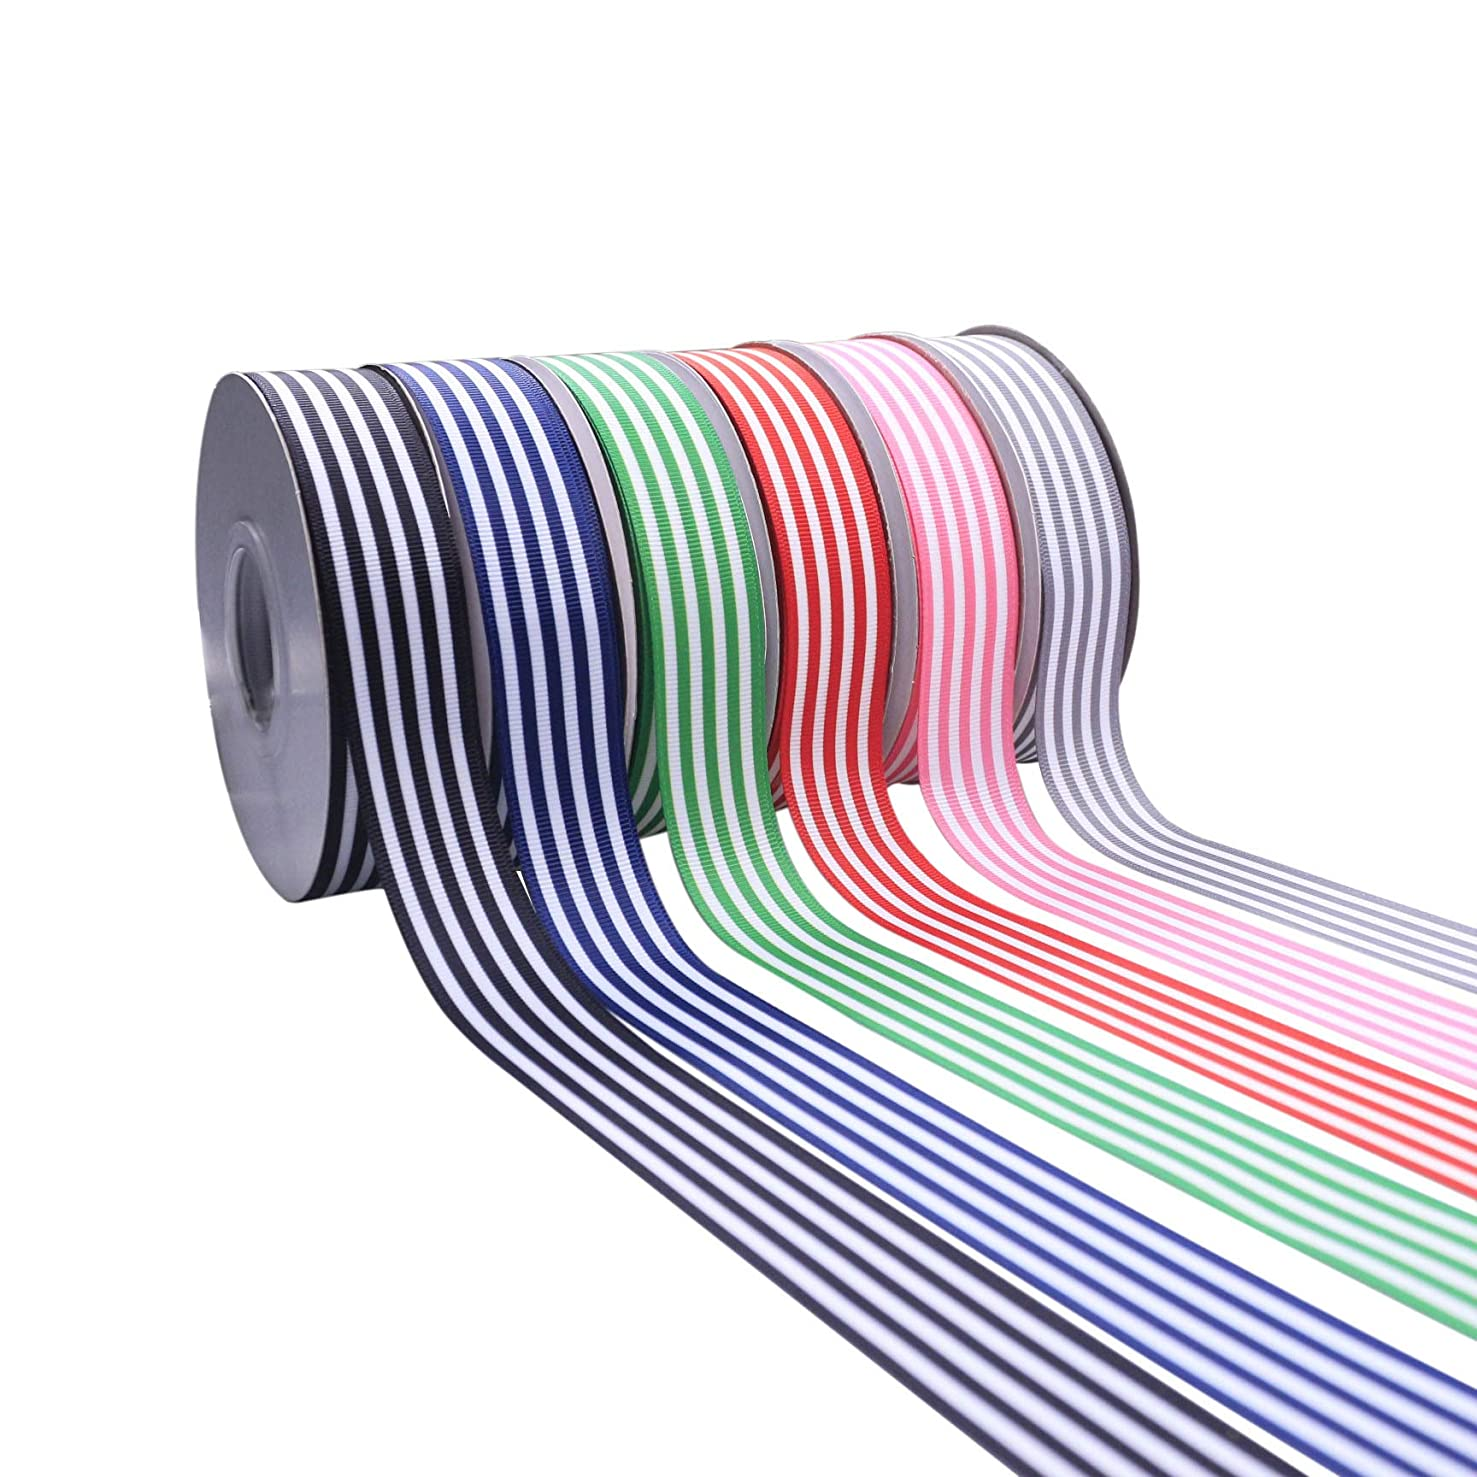 Multi Color Striped Grosgrain Ribbon 1 Inch 30 Yards Premium Fabric Ribbon 6 Rolls 5 Yards/Color Gift Wrap Ribbon for Weddings Bridal Showers Holiday Valentine's Day Gift Decor